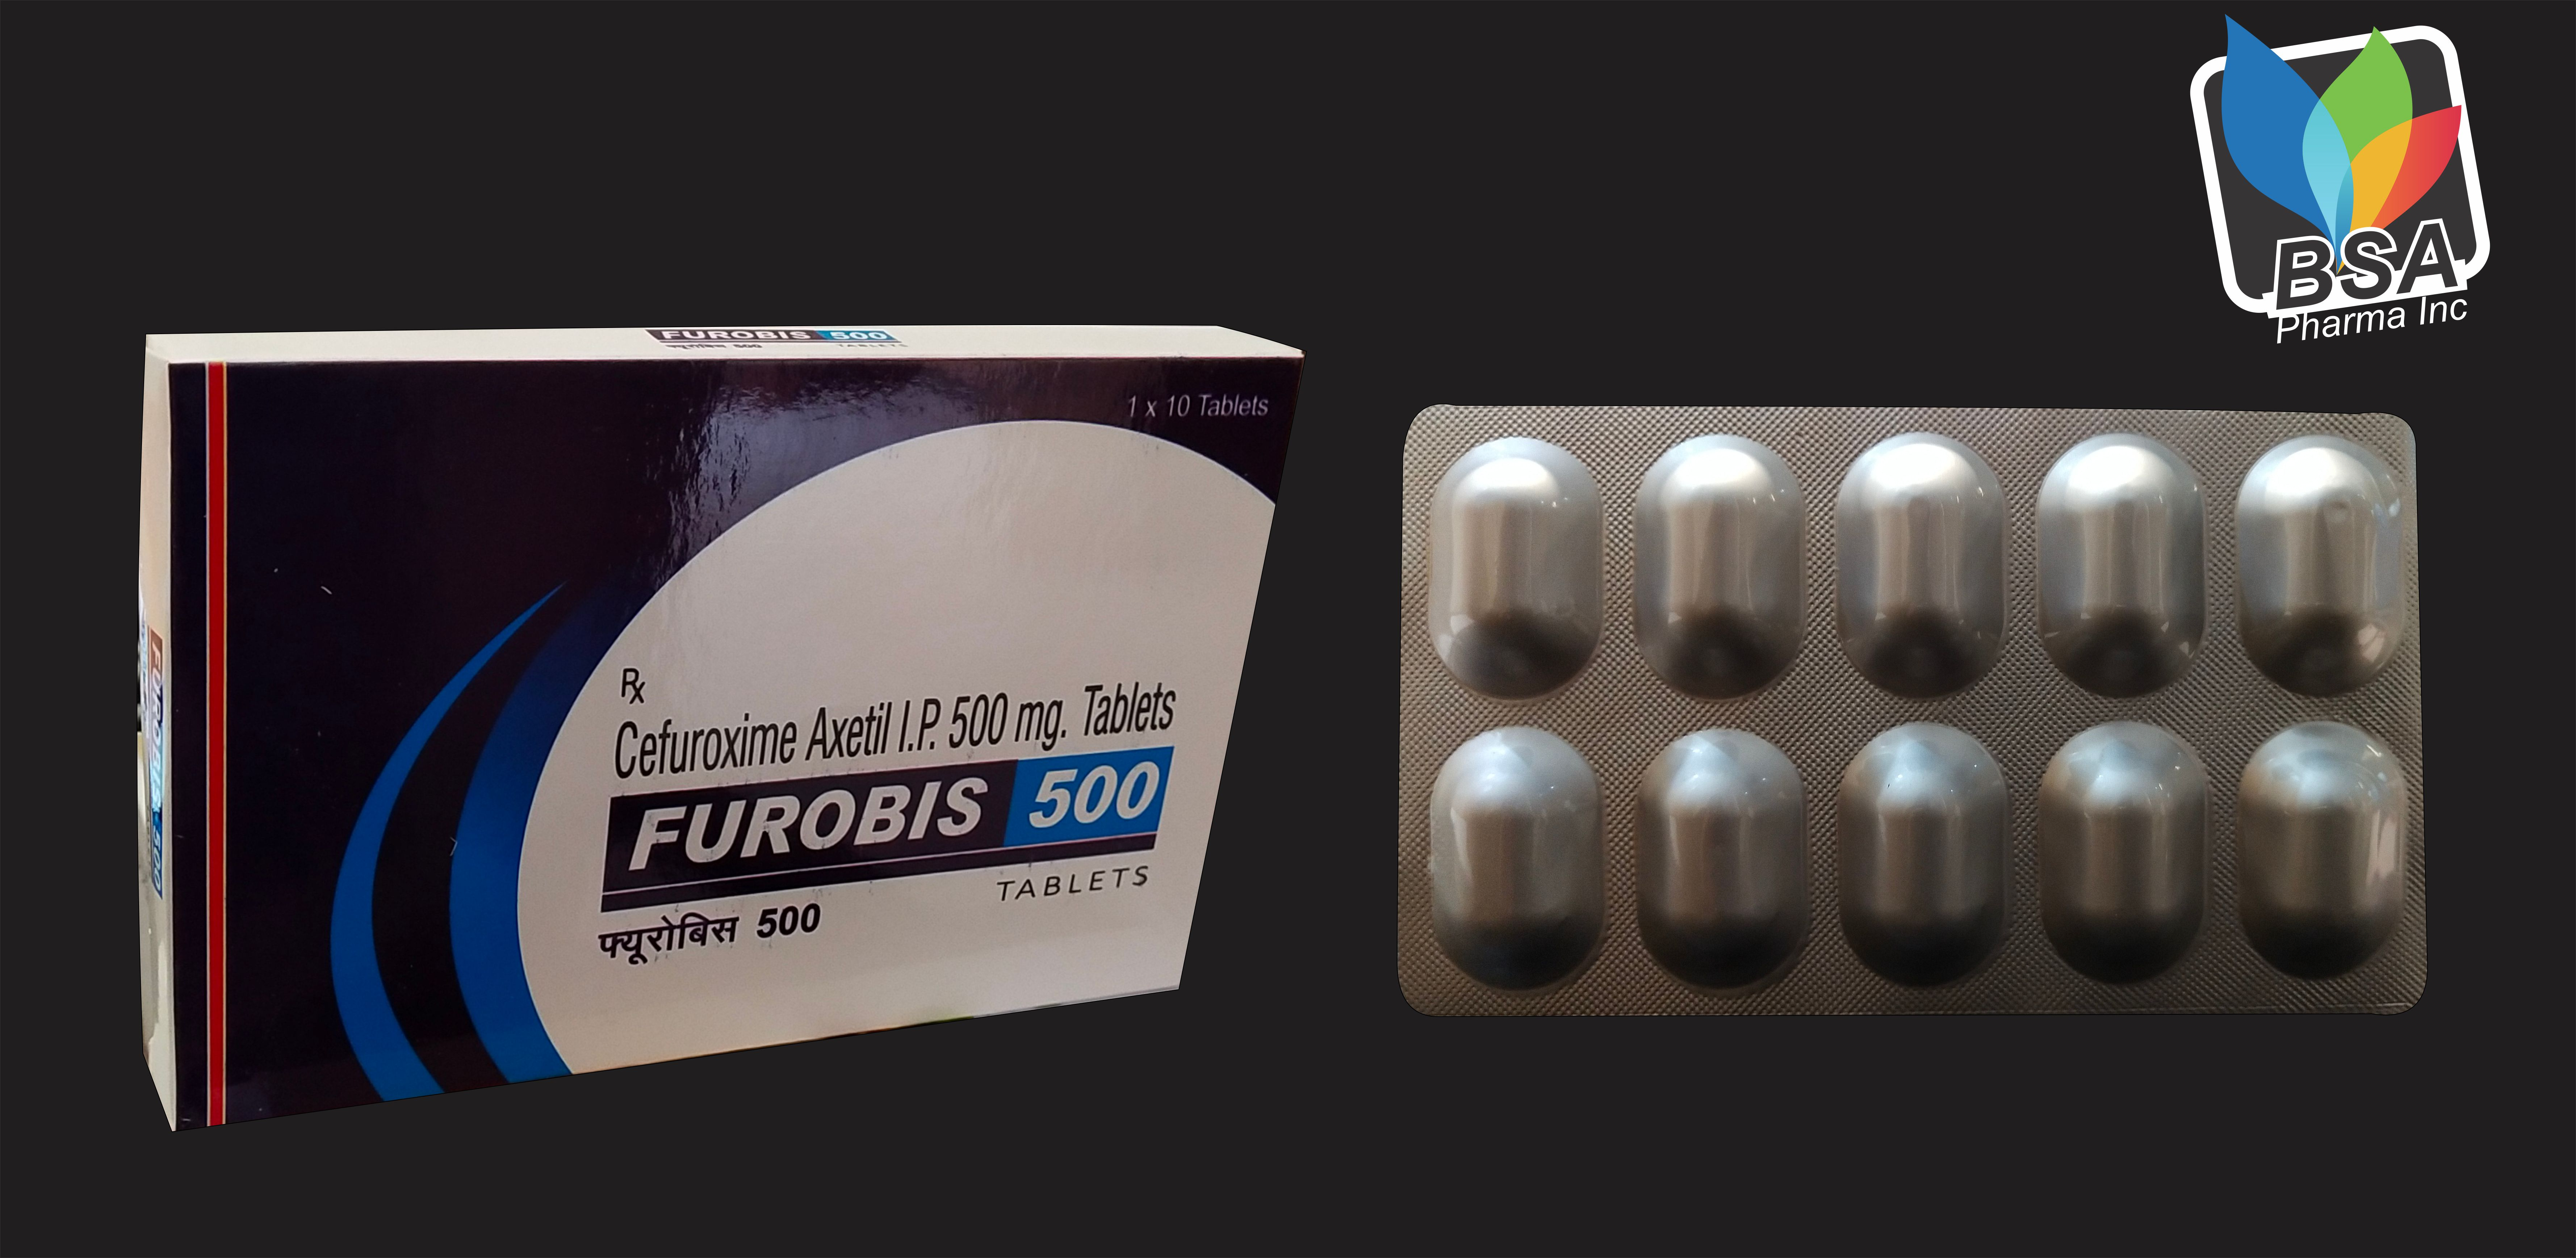 Cefuroxime Axetil 500 Tablets